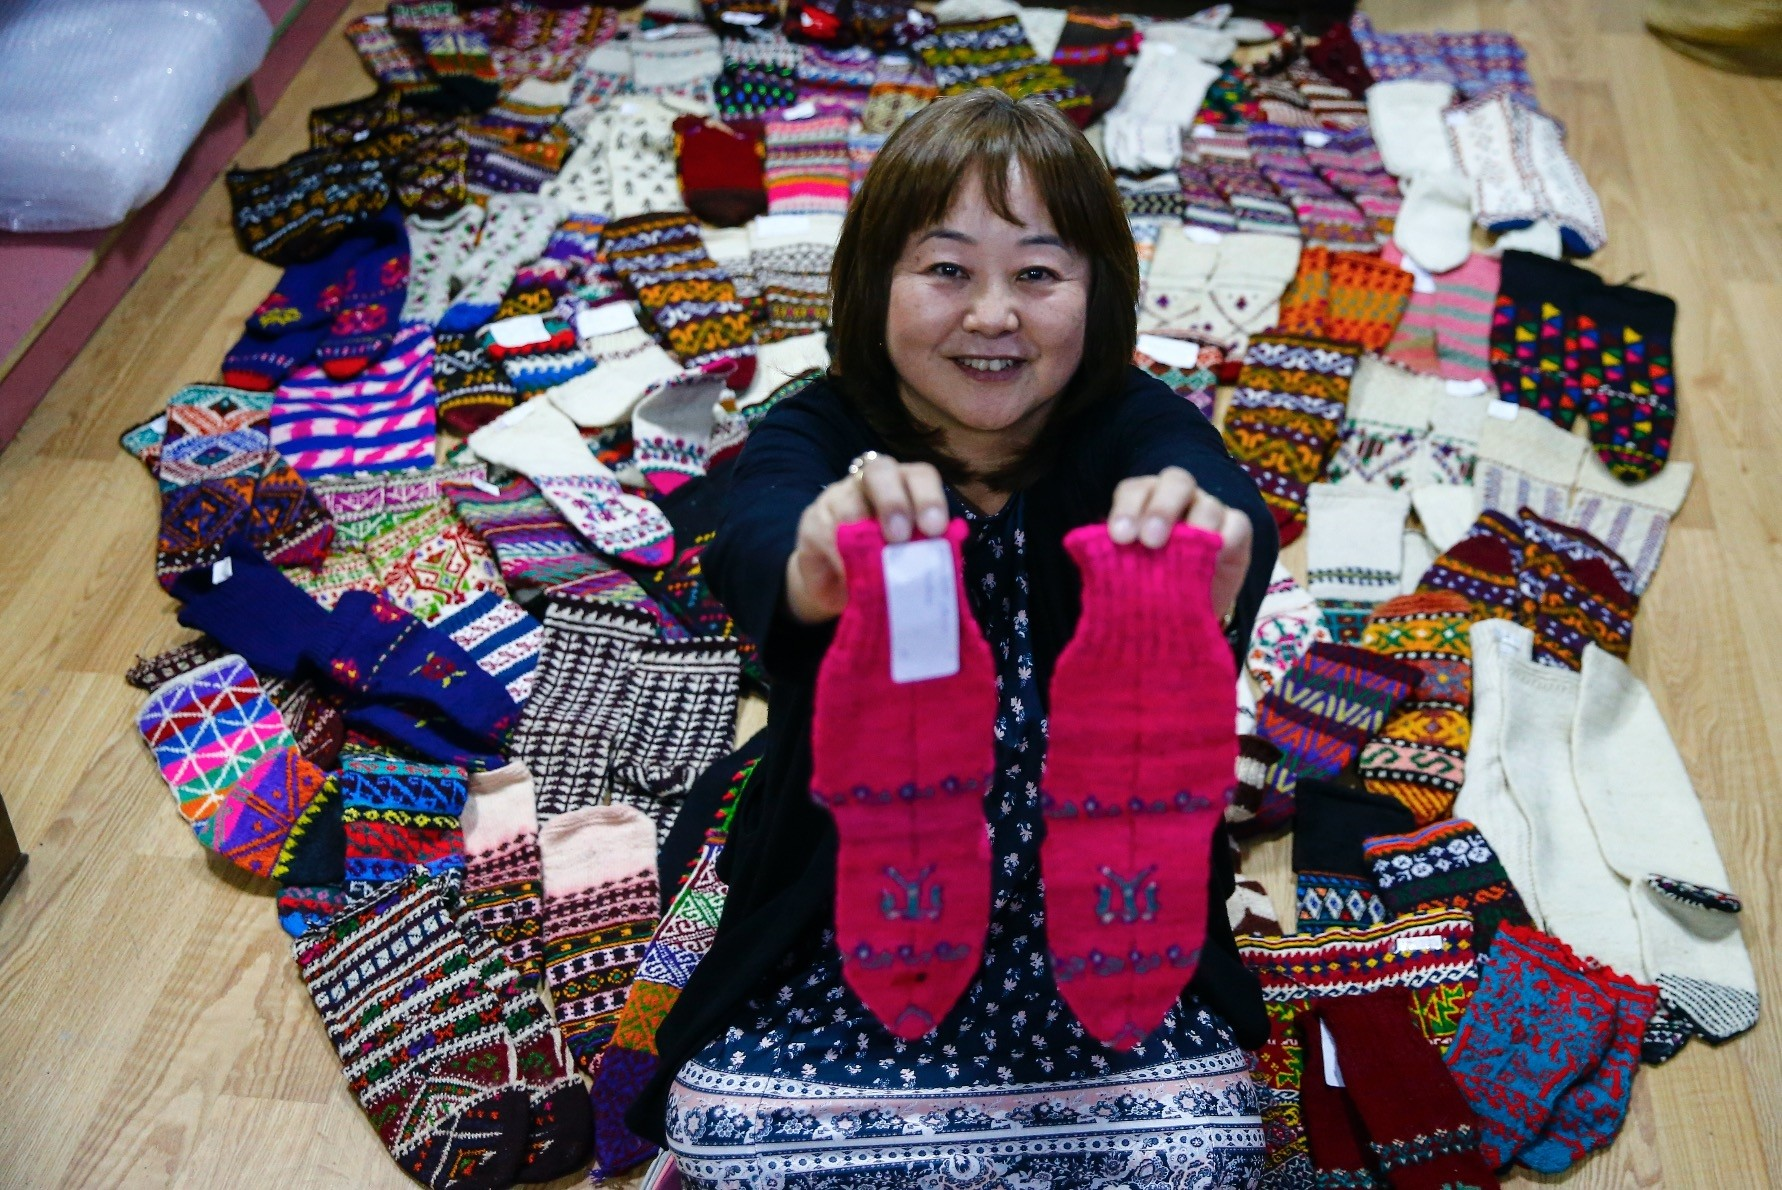 Ikumi Nonaka created a 700-piece collection from these socks she gathered from all over Turkey.